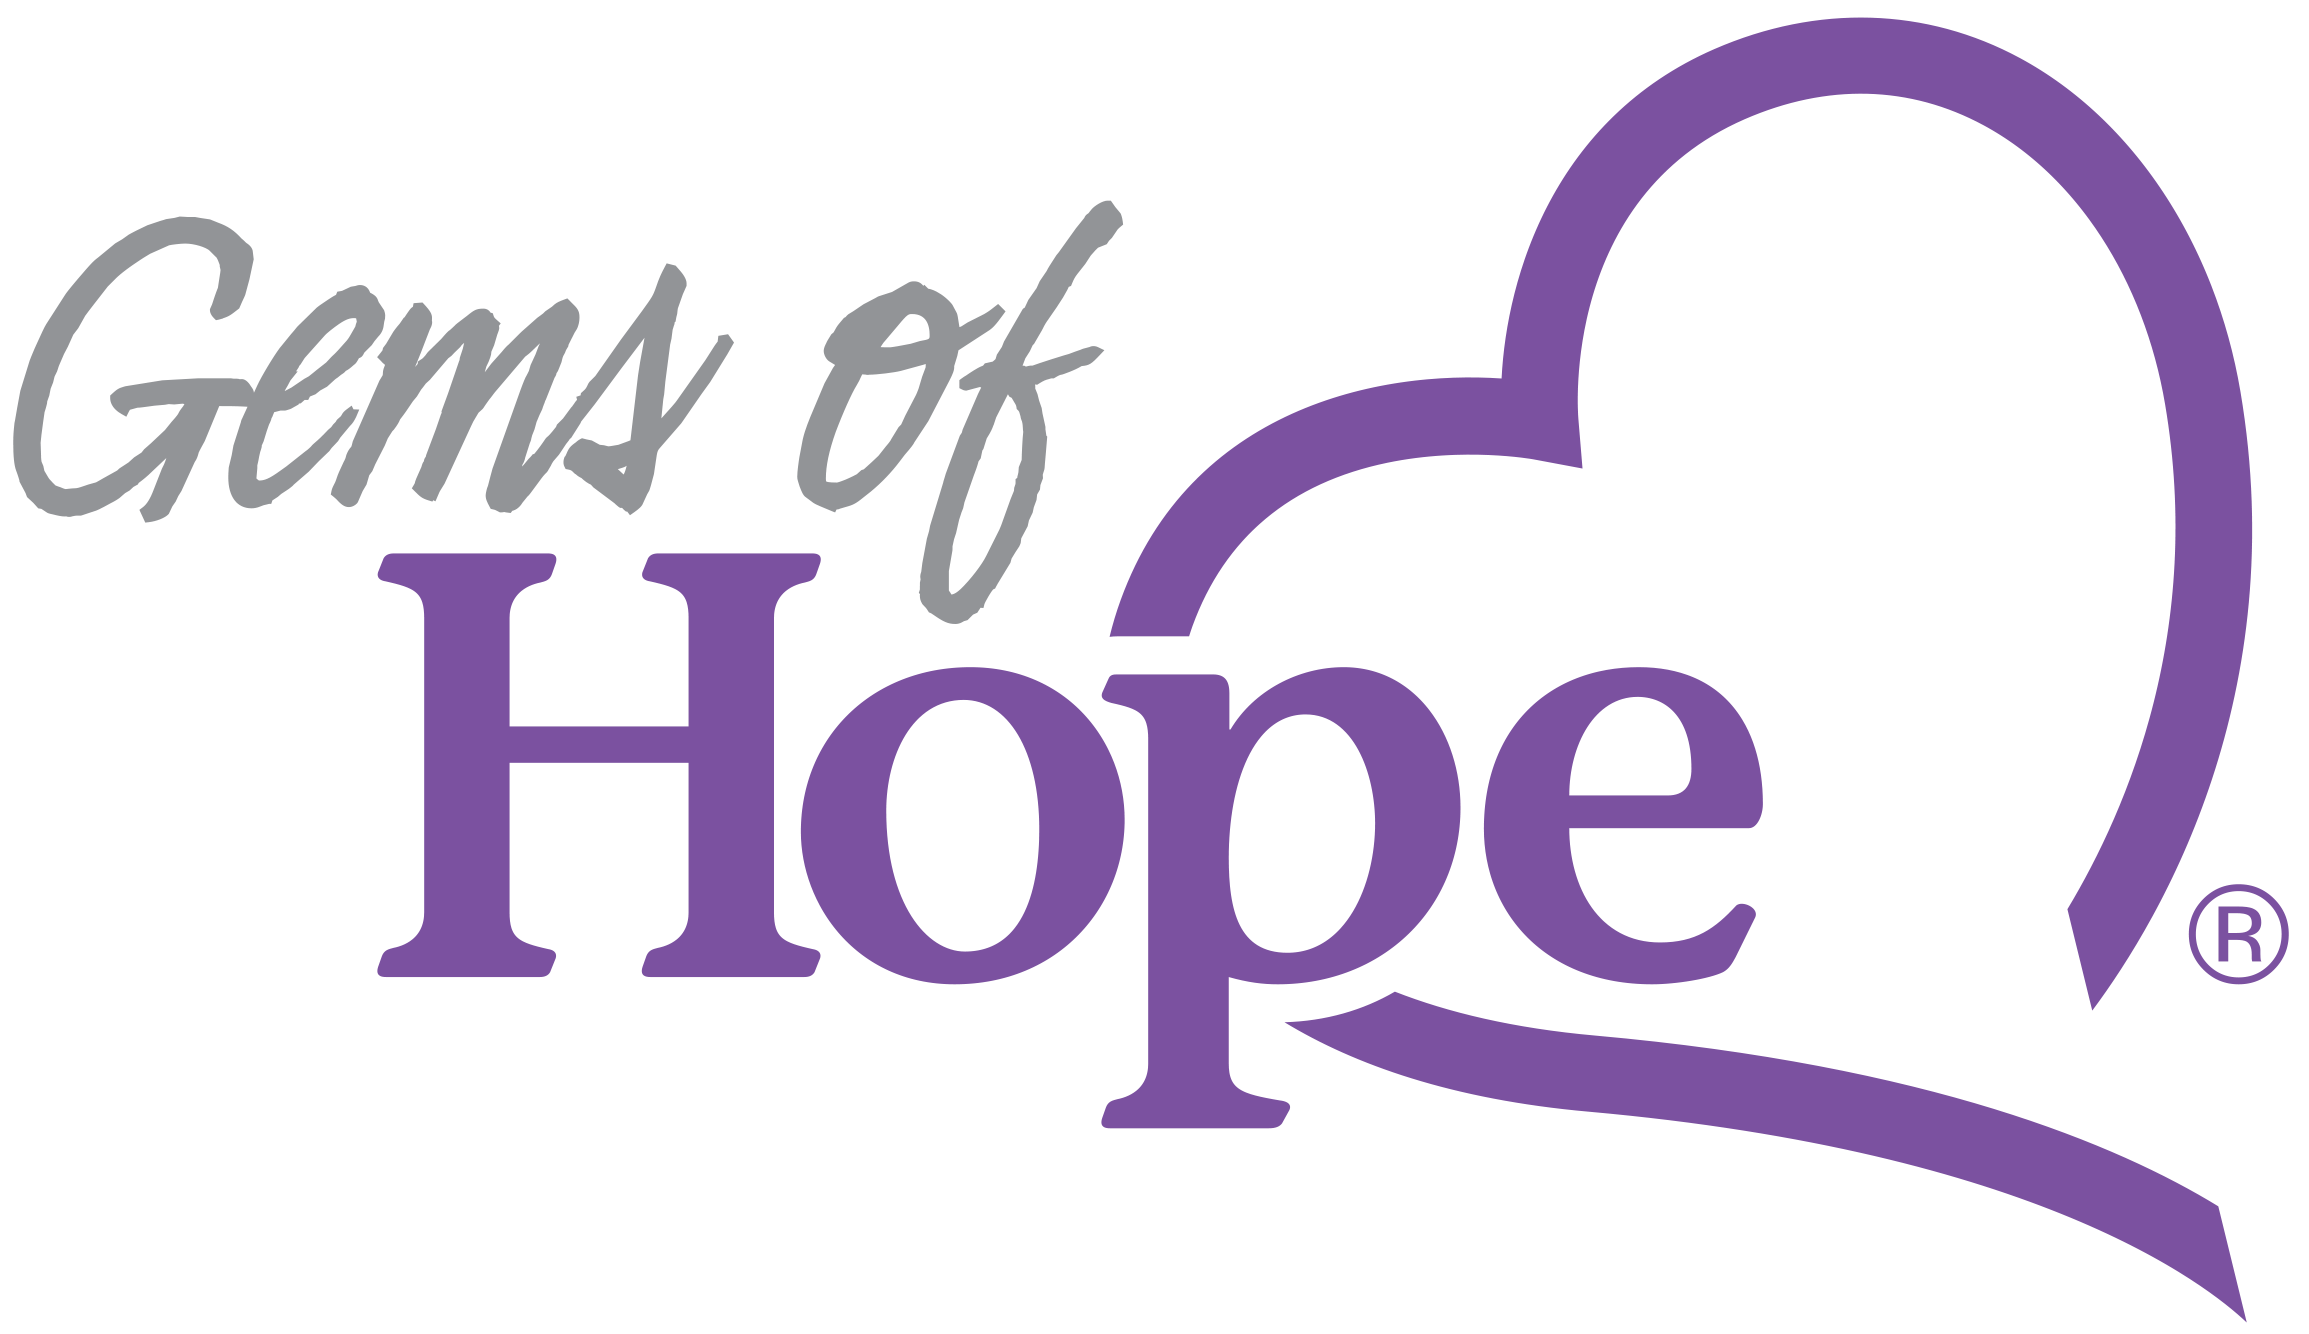 Gems of Hope